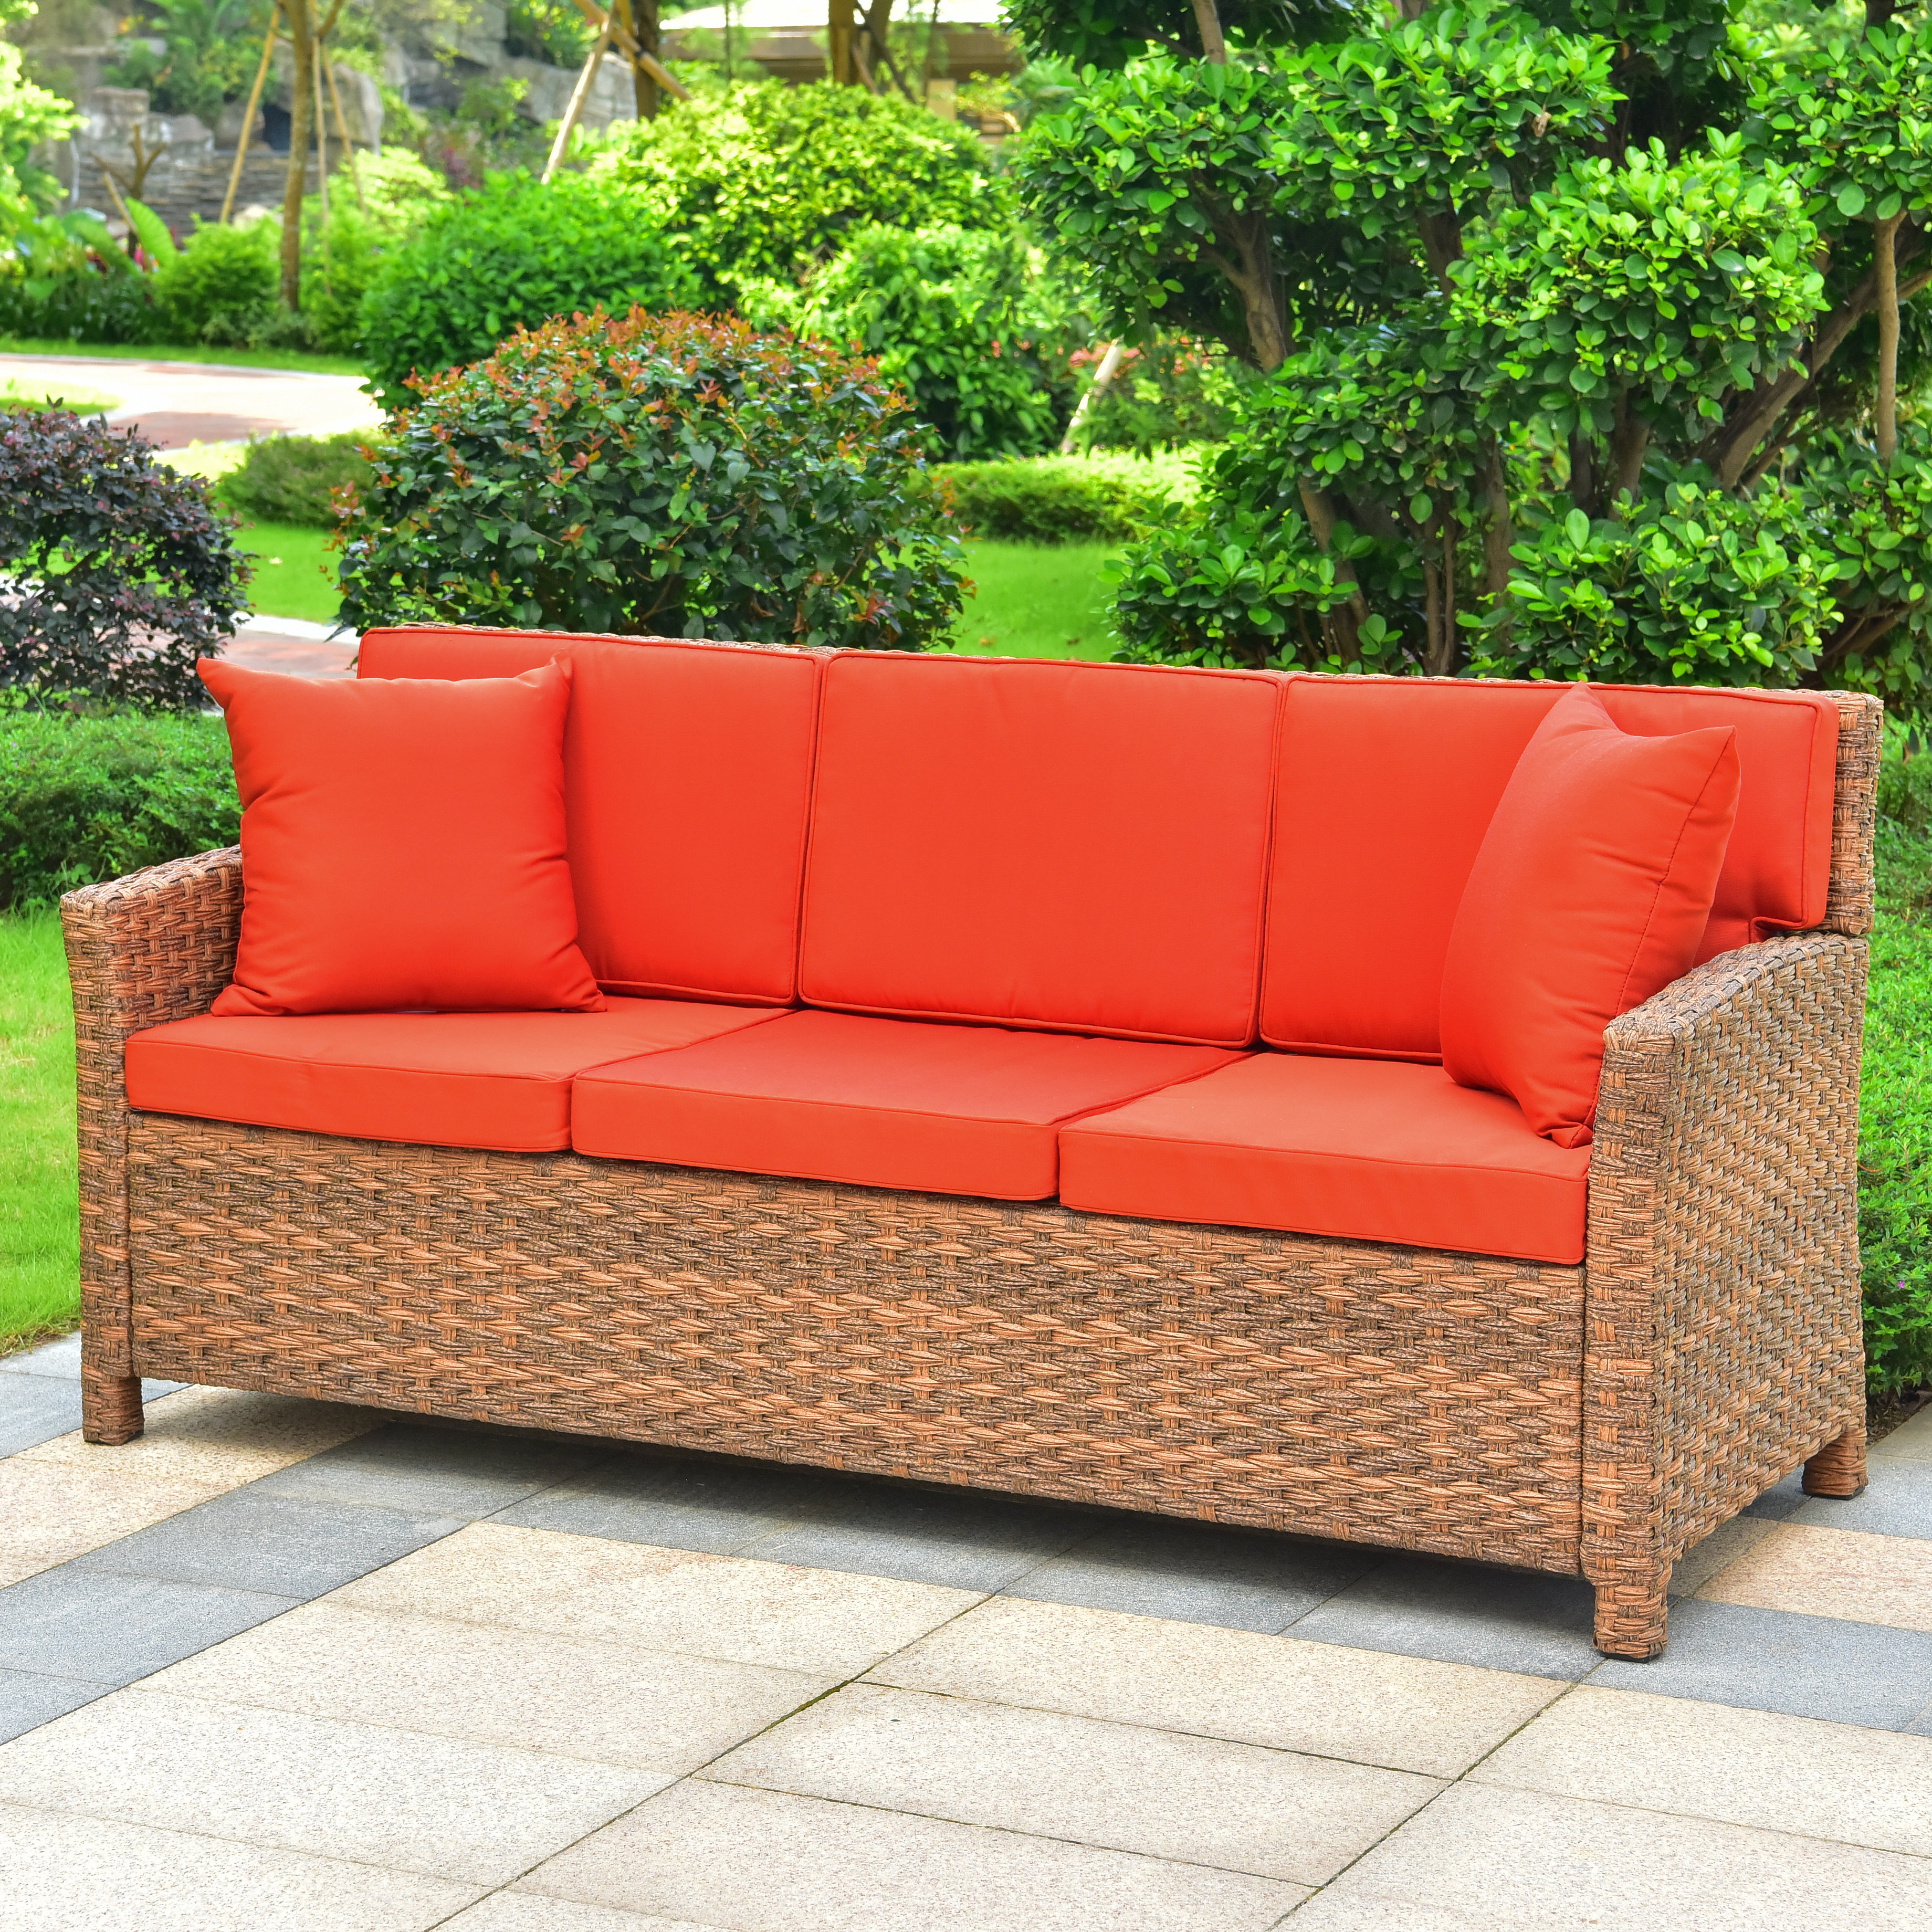 Deanna Resin Wicker Patio Sofa With Cushions Within Most Current Katzer Patio Sofas With Cushions (View 6 of 20)